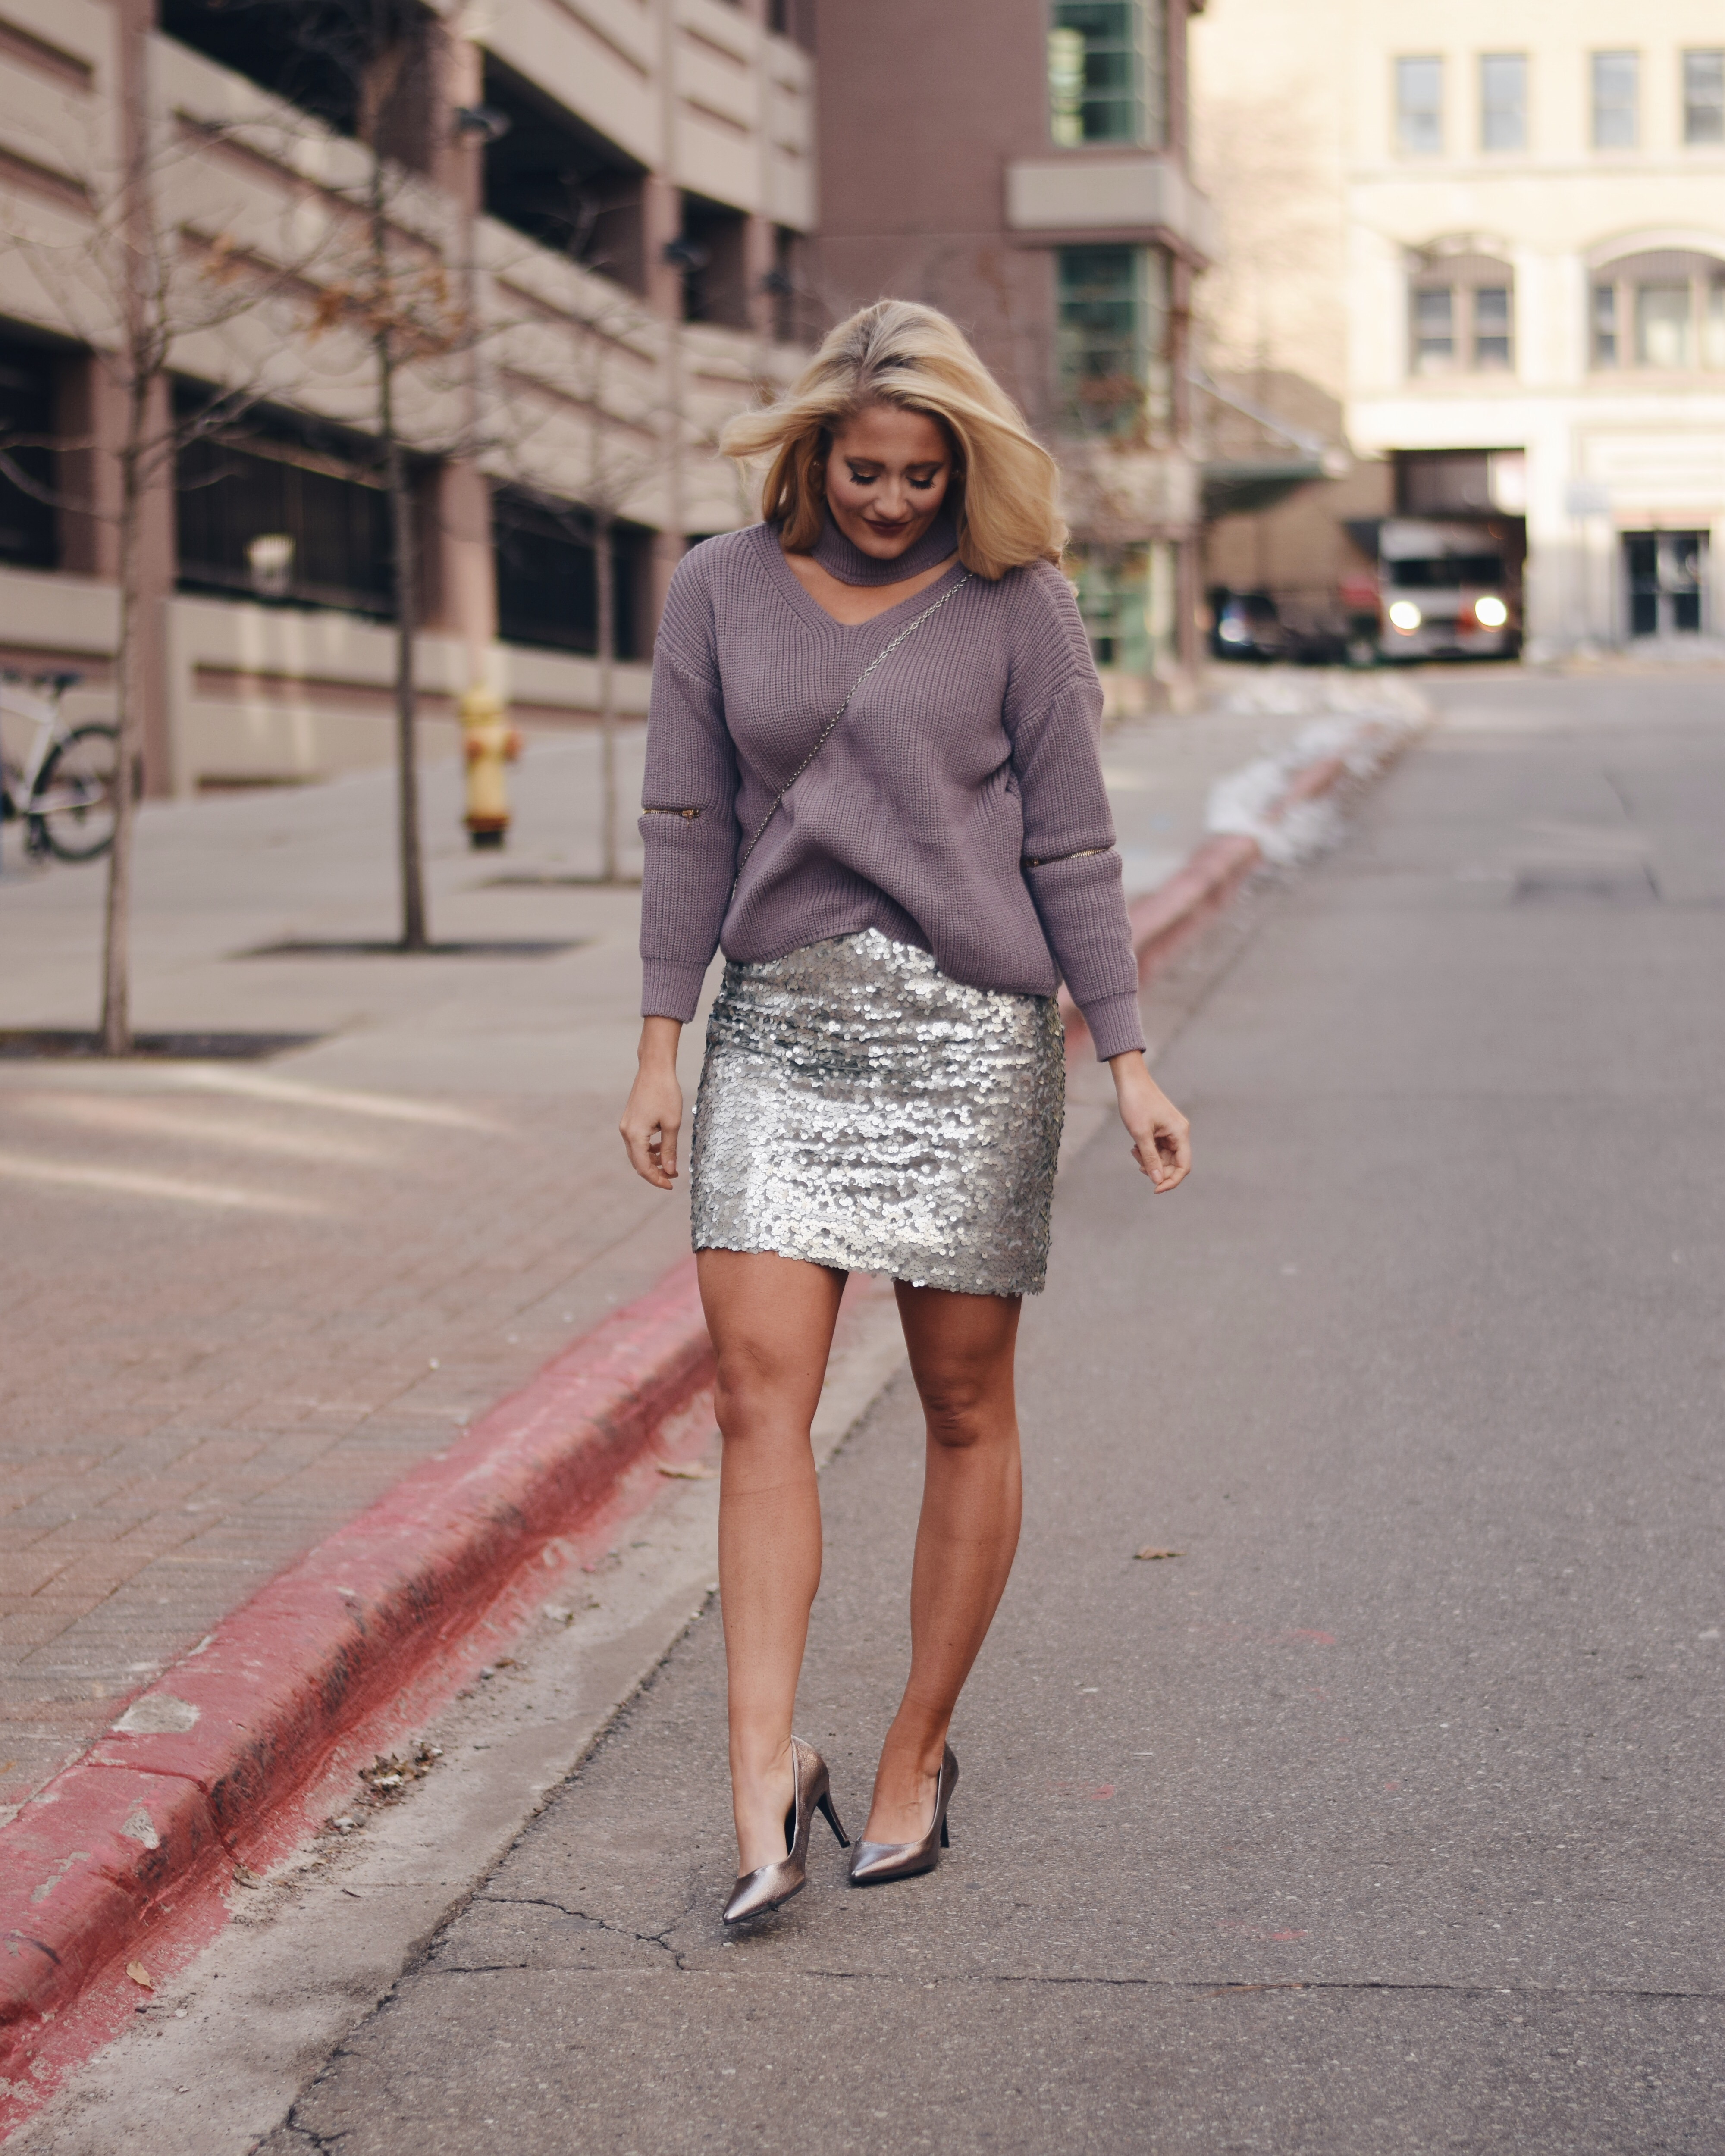 CHOKER NECK SWEATER + SEQUIN SKIRT